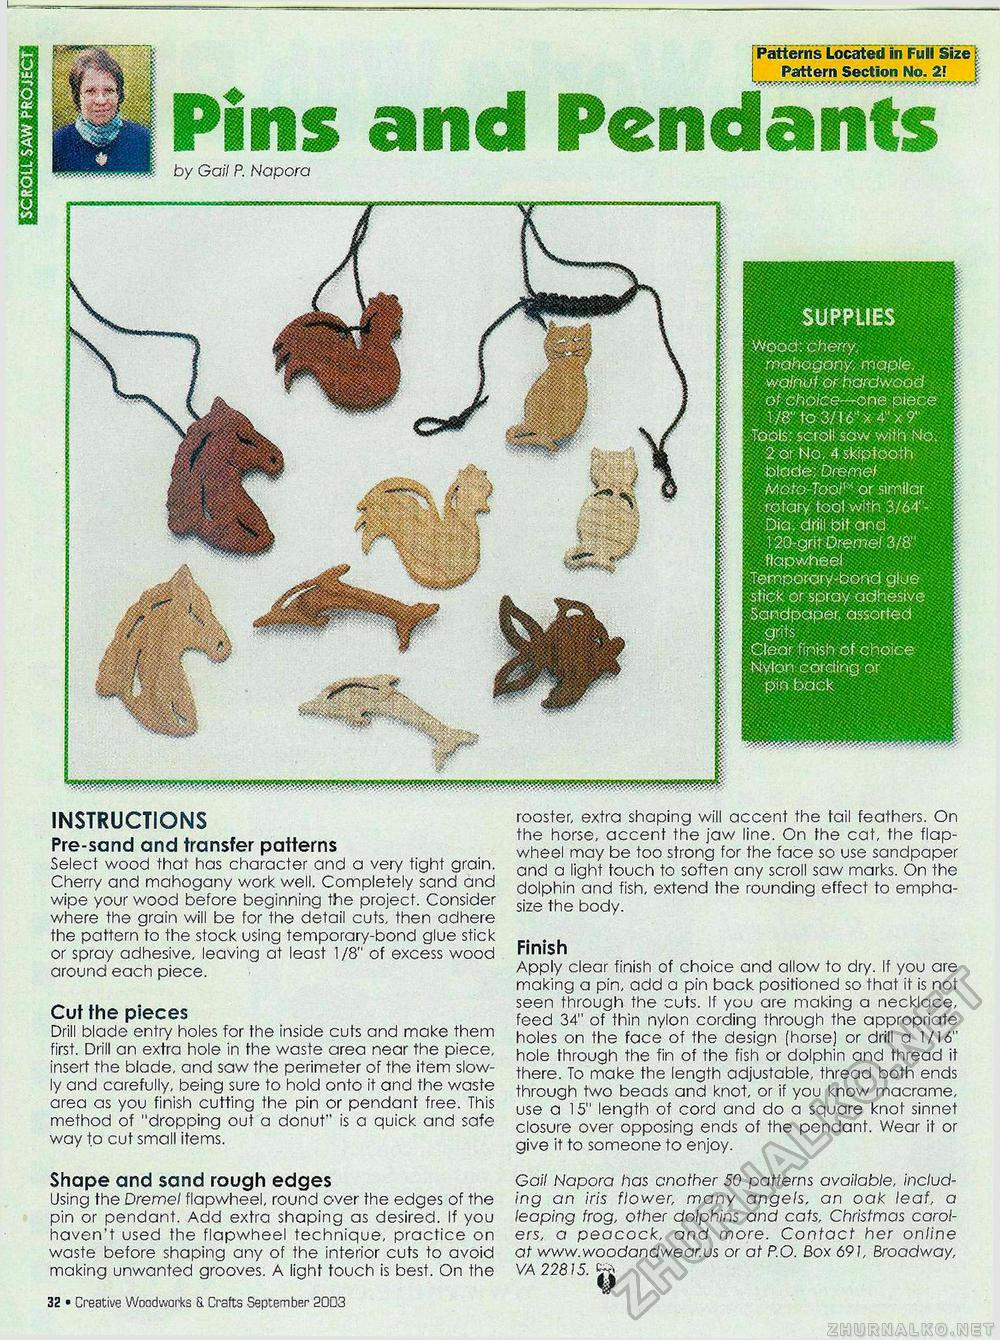 Creative Woodworks & crafts 2003-09, страница 32